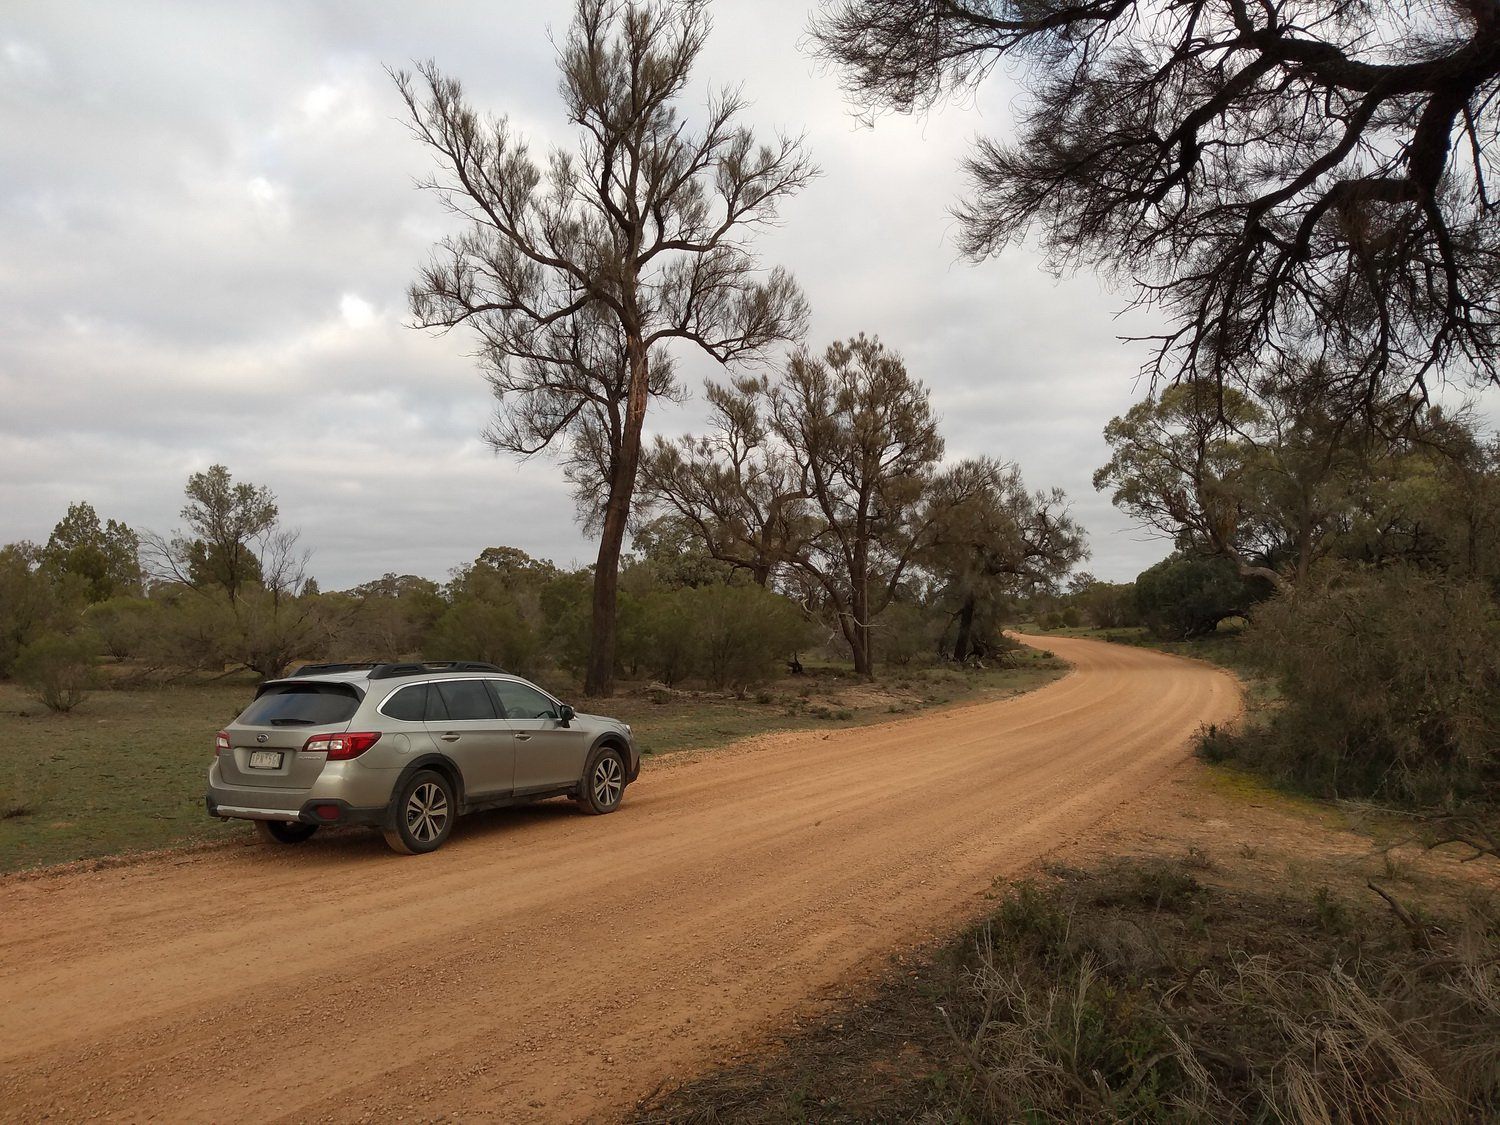 The long dirt road through Hattah - Kulkyne National Park. North West Victoria Tour, July 2020.